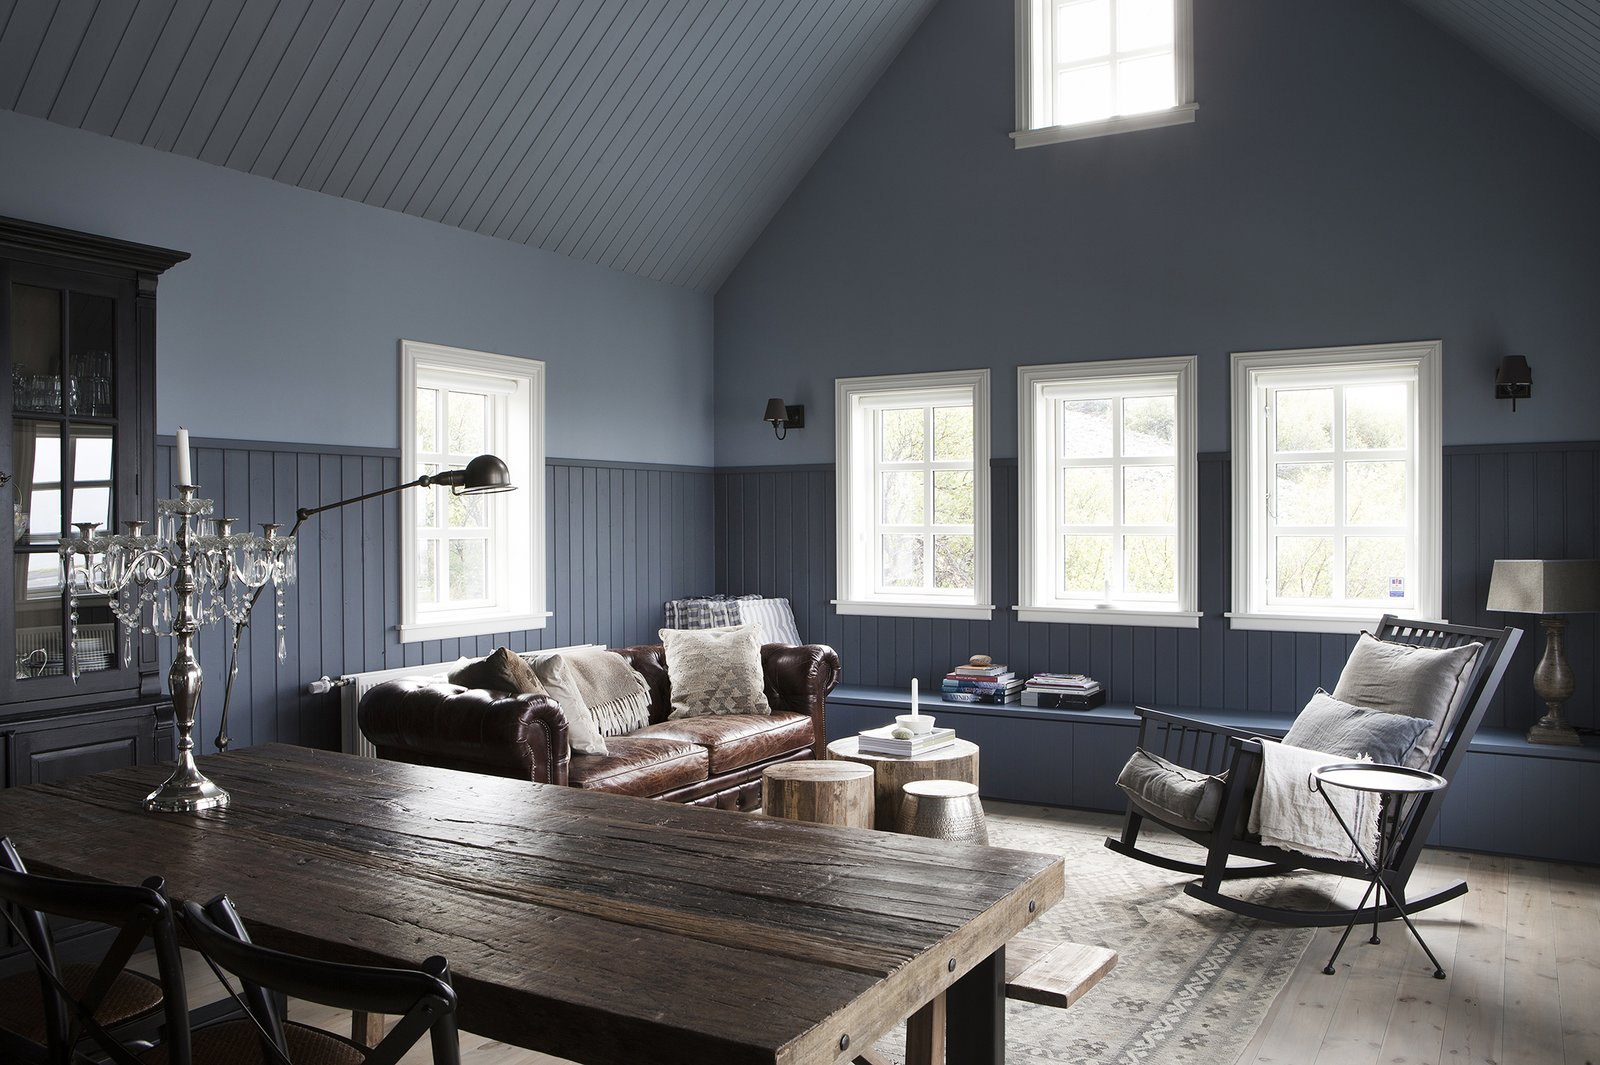 10 Incredible Rentals For Your Dream Trip to Iceland - Photo 2 of 29 -